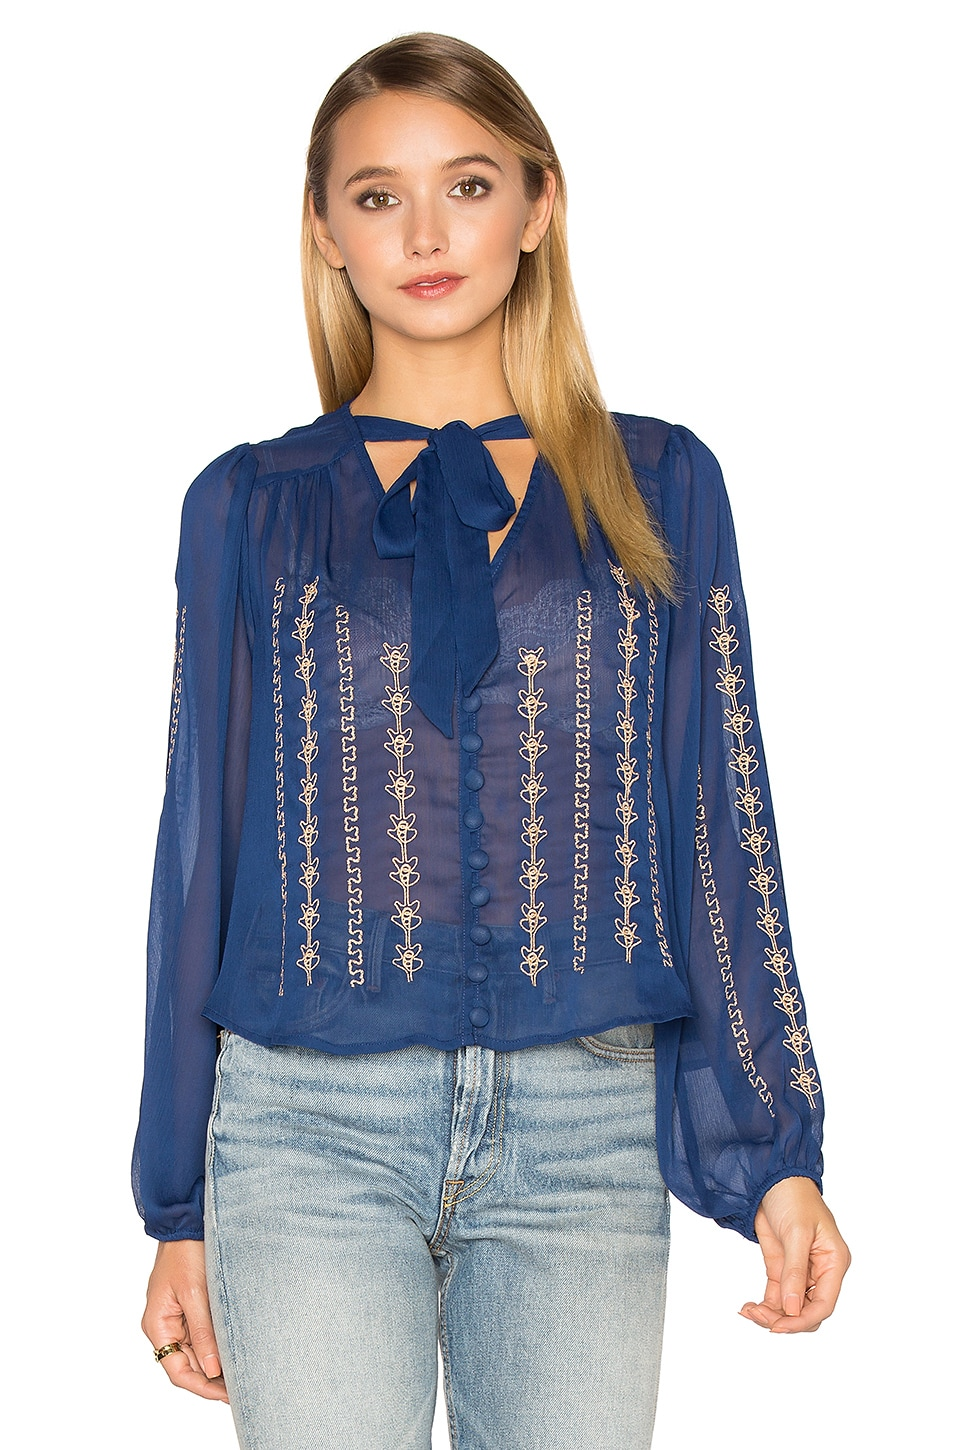 Embroidered Blouse by Band of Gypsies